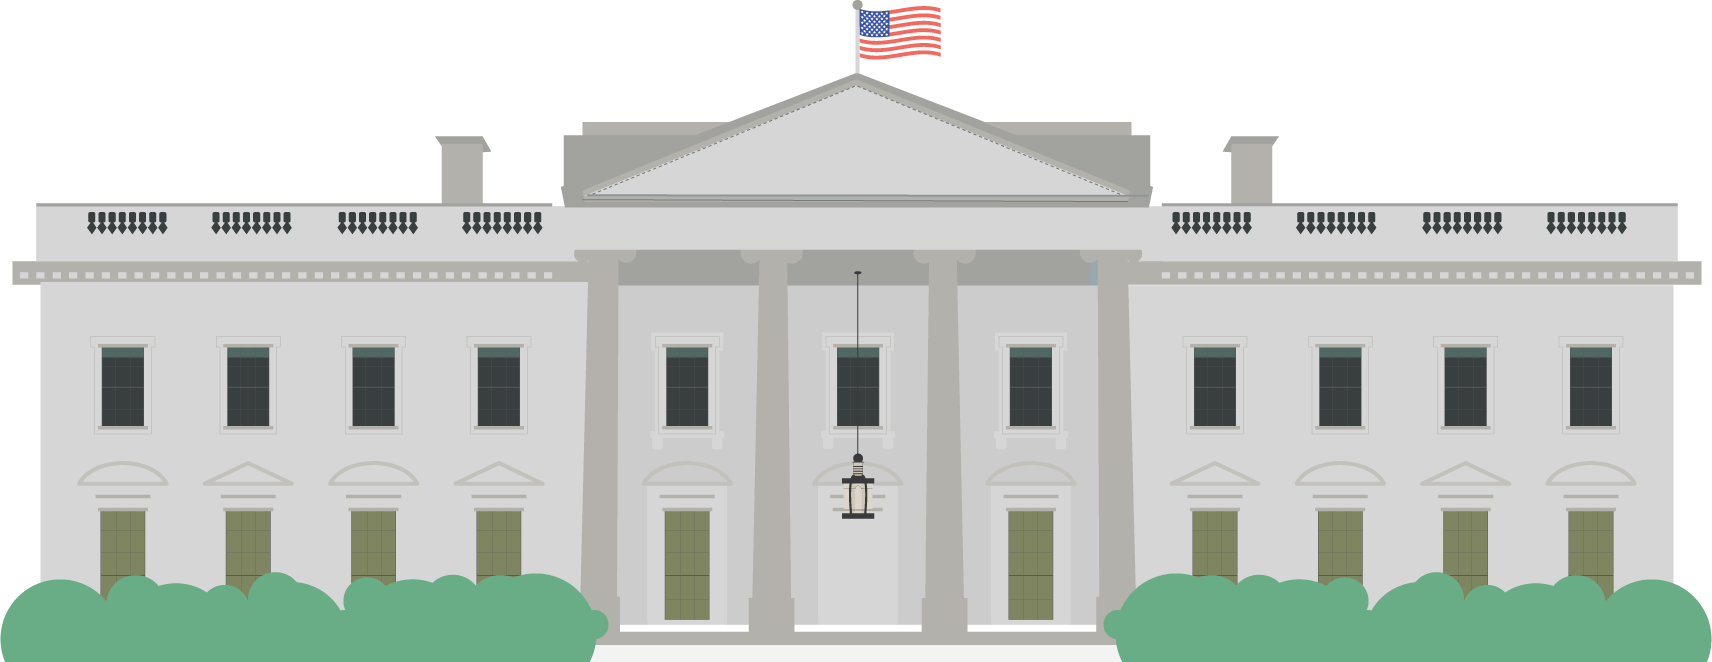 State house clipart clip black and white White House Clipart united states - Free Clipart on Dumielauxepices.net clip black and white